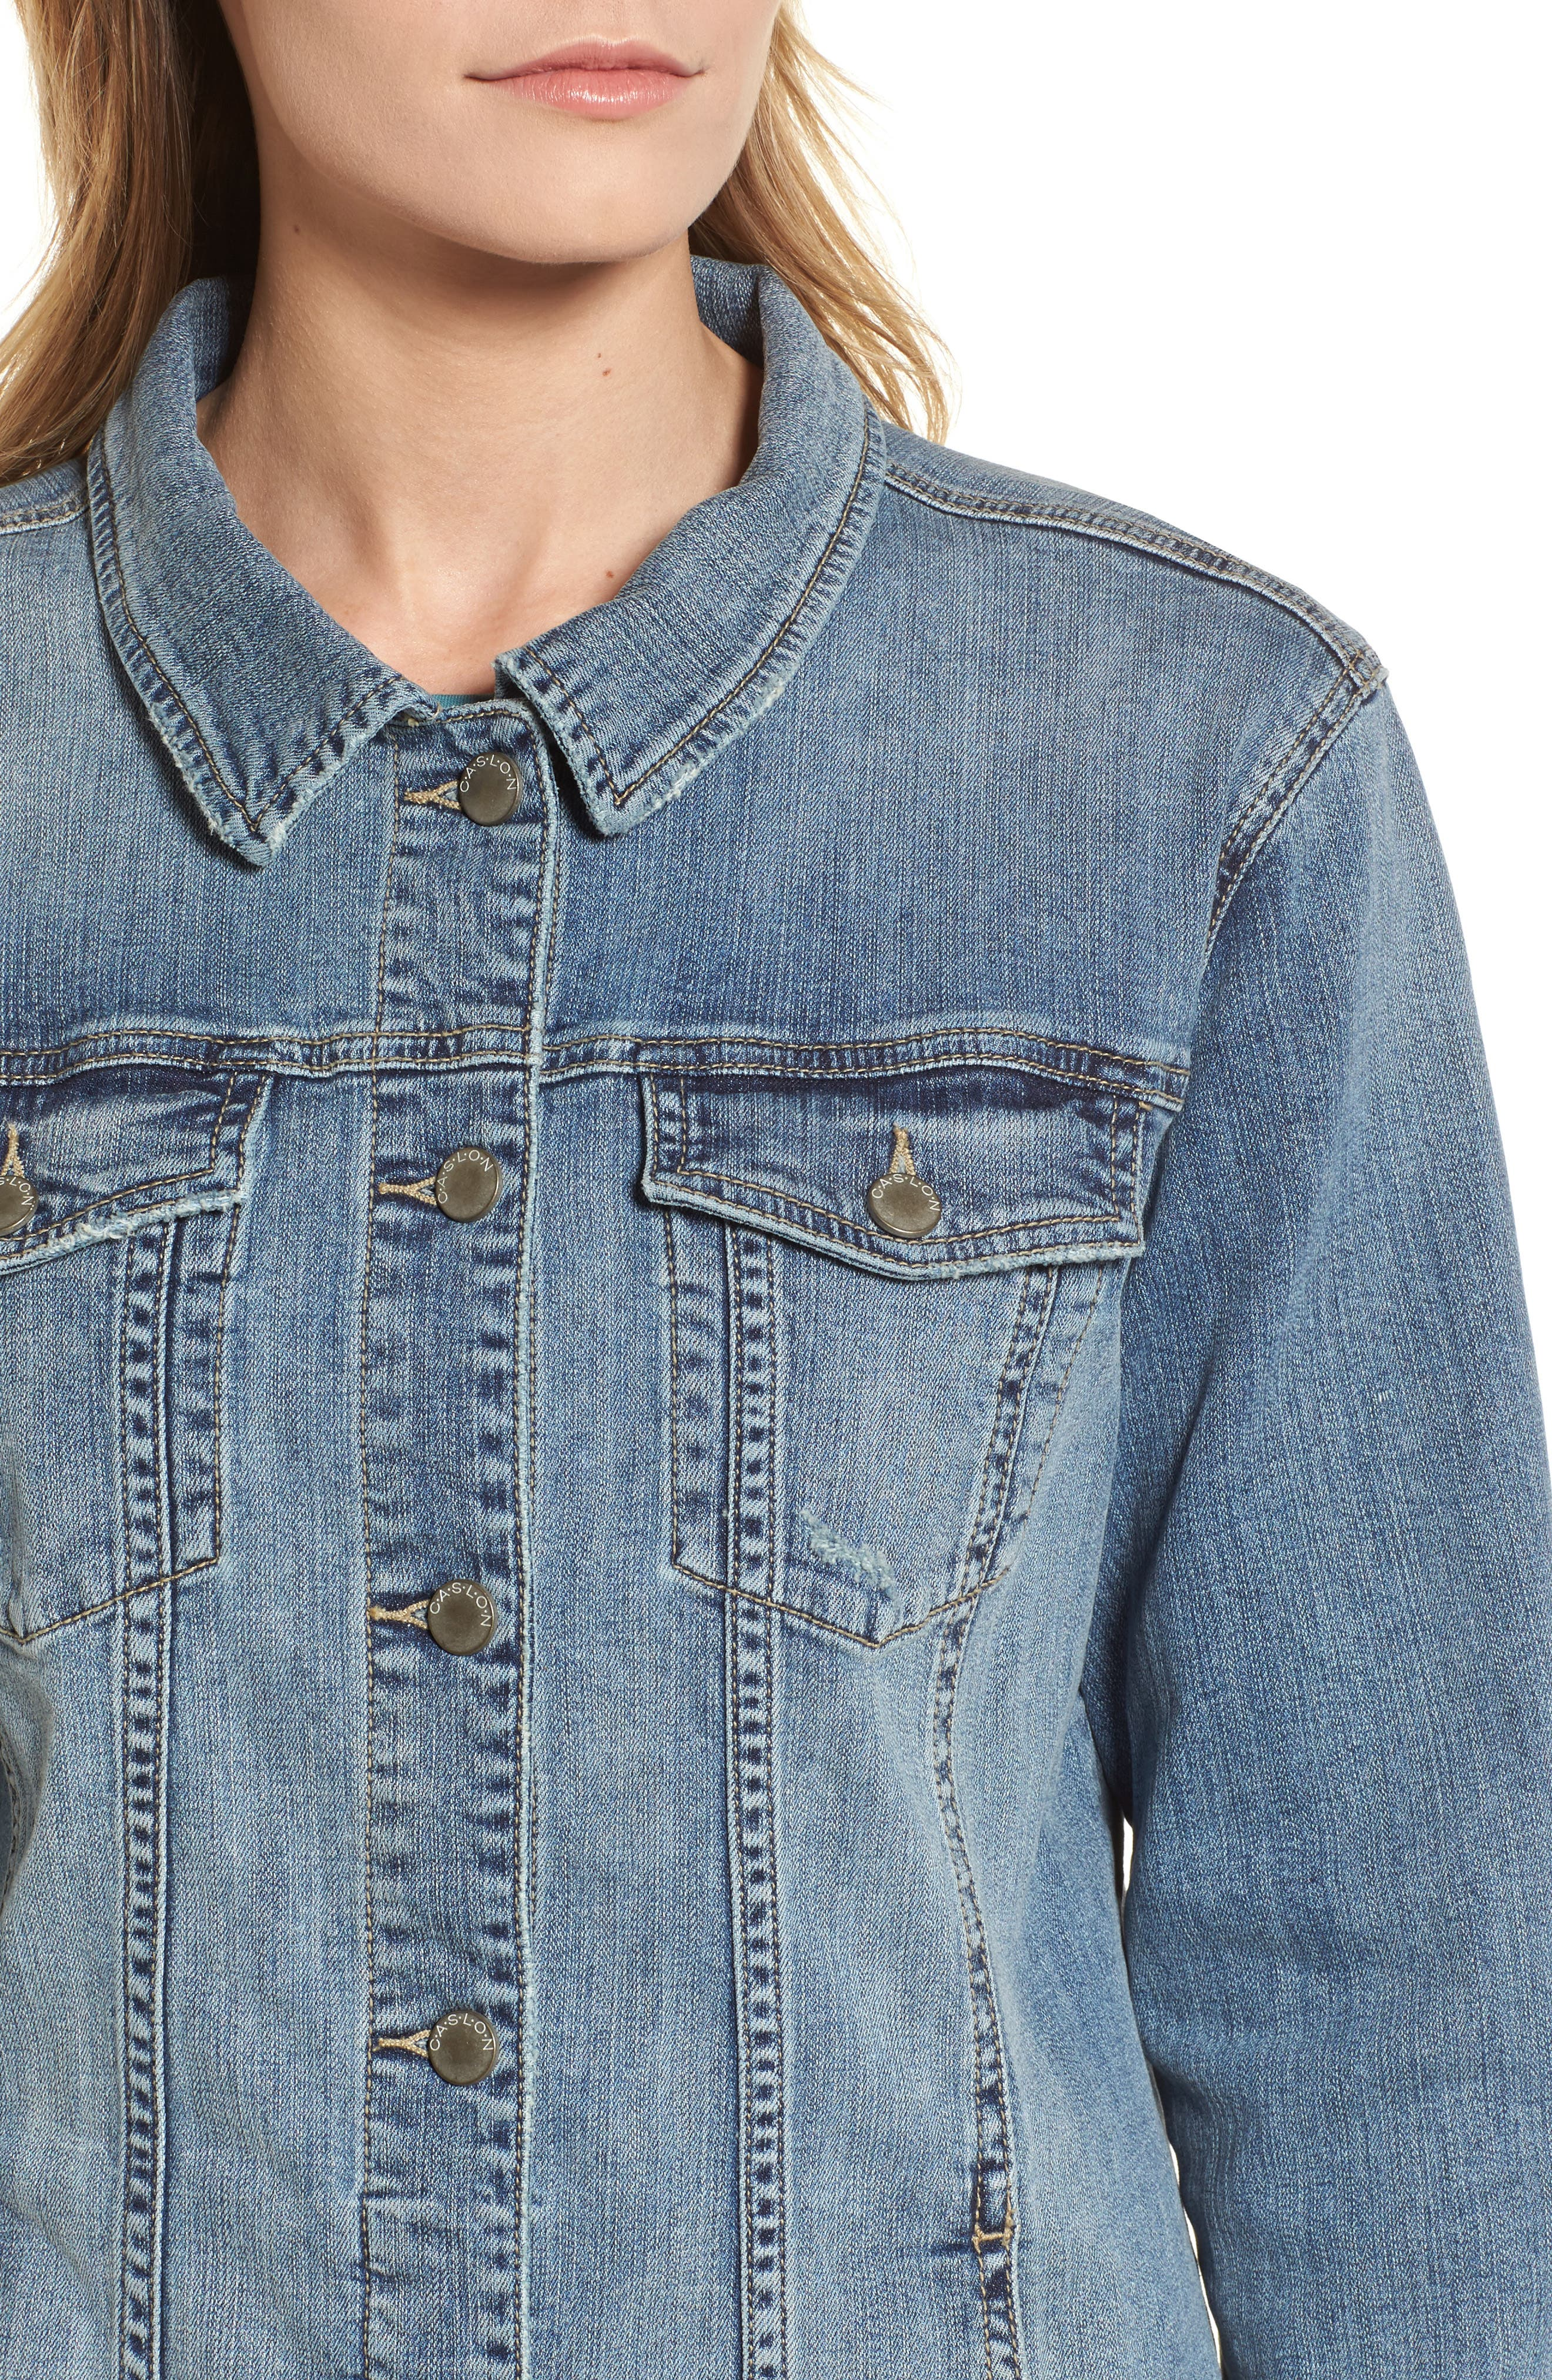 Relaxed Fit Denim Jacket,                             Alternate thumbnail 4, color,                             420